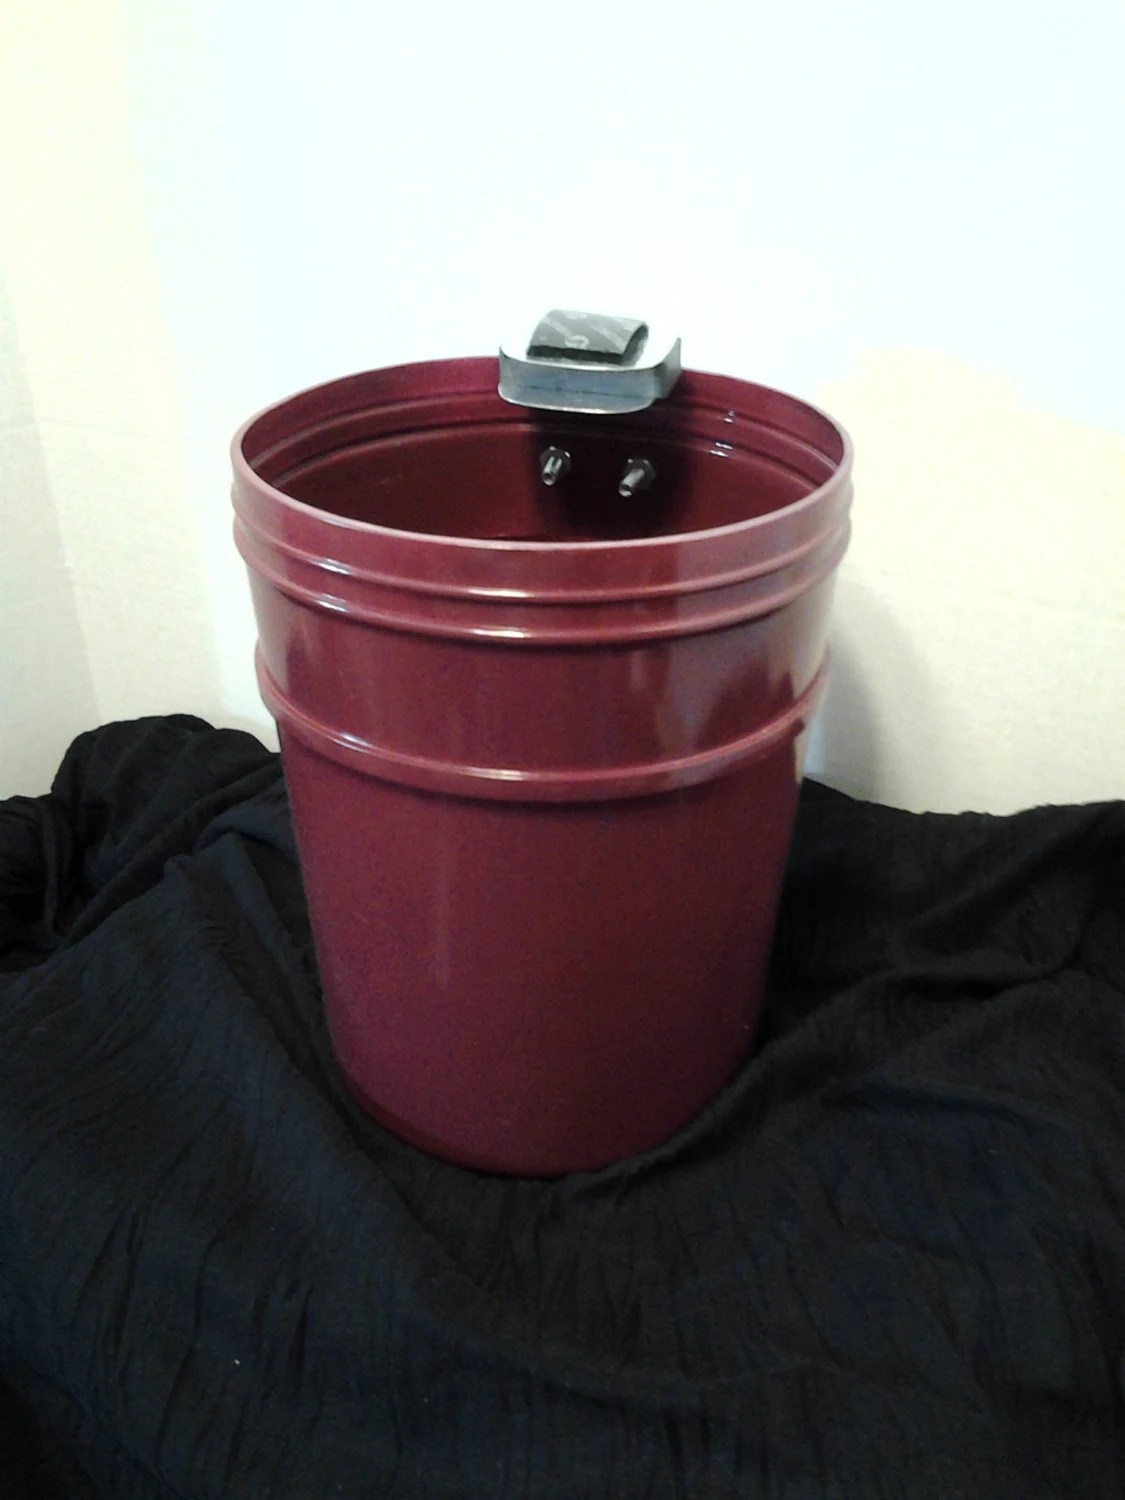 Mini Plastic Trash Can With Lid Burgundy Plastic Magnetic Mini Trash Can Container Magnet Trash Can Container Waste Paper Basket Trash Basket Plastic Trash Can